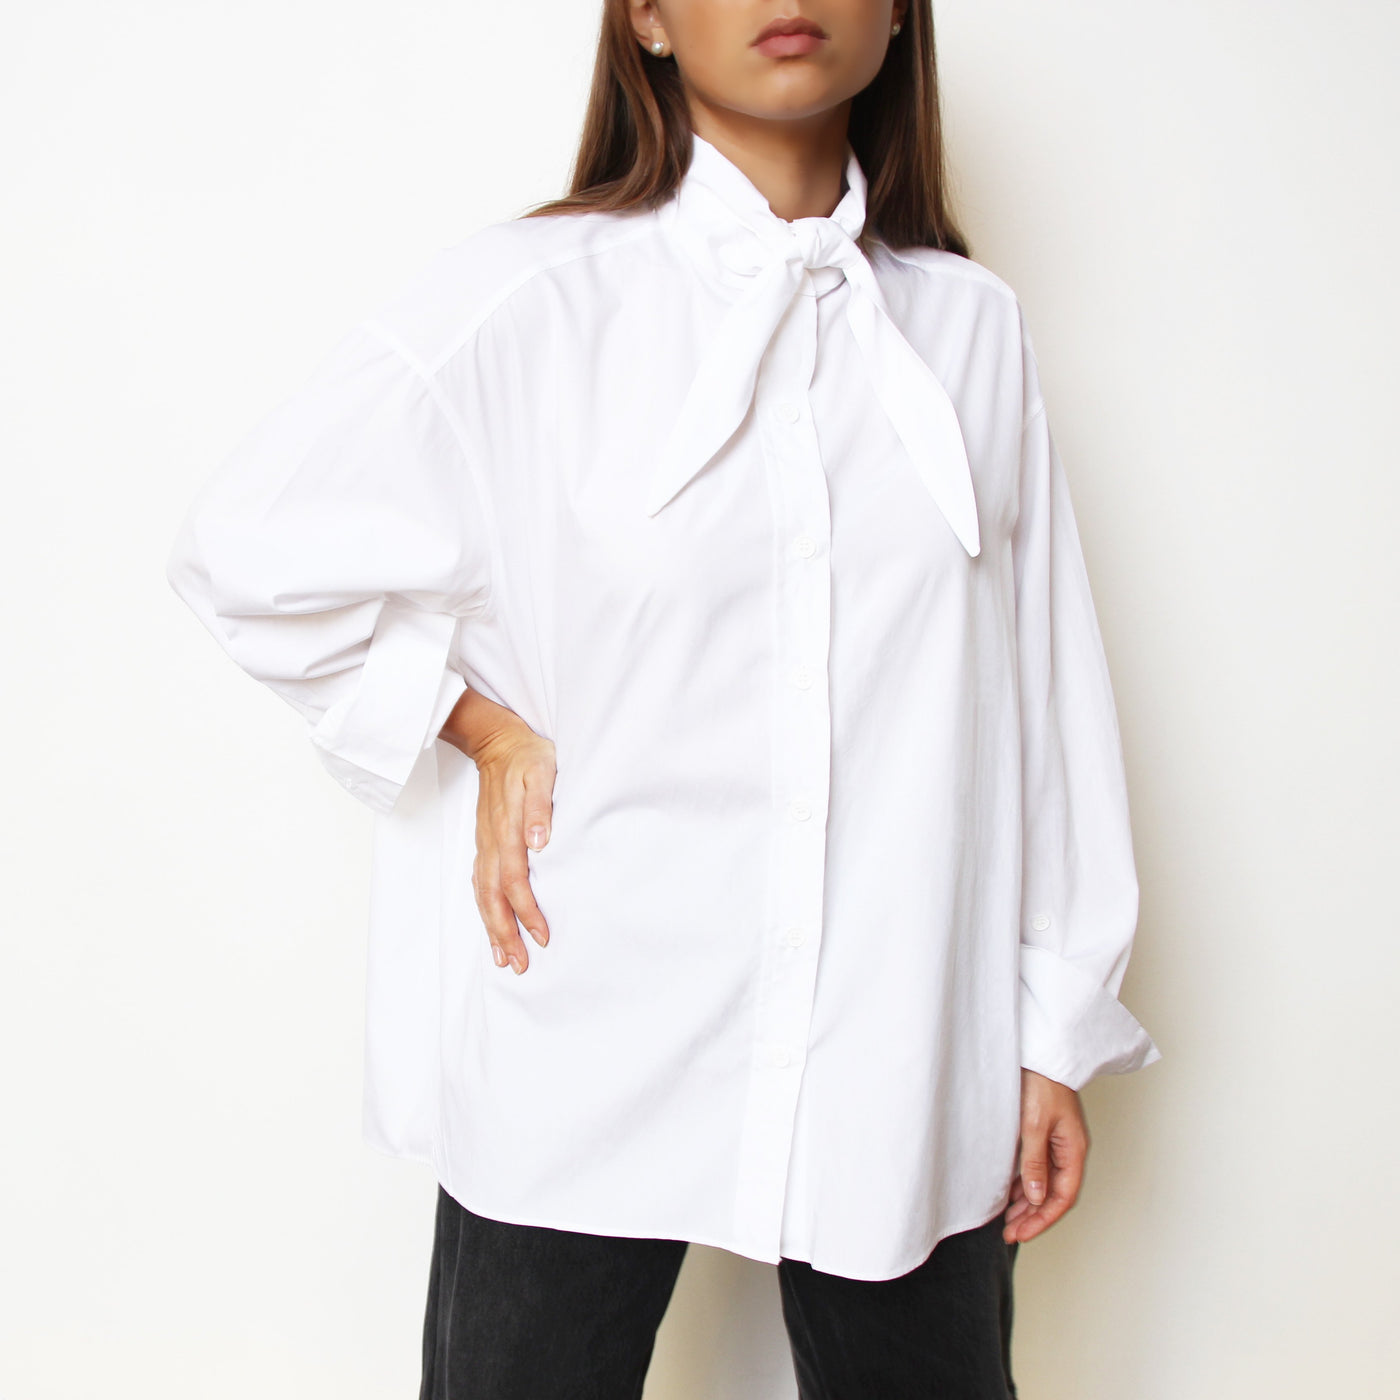 Neck Tie / Scarf Shirt - Marble Hive